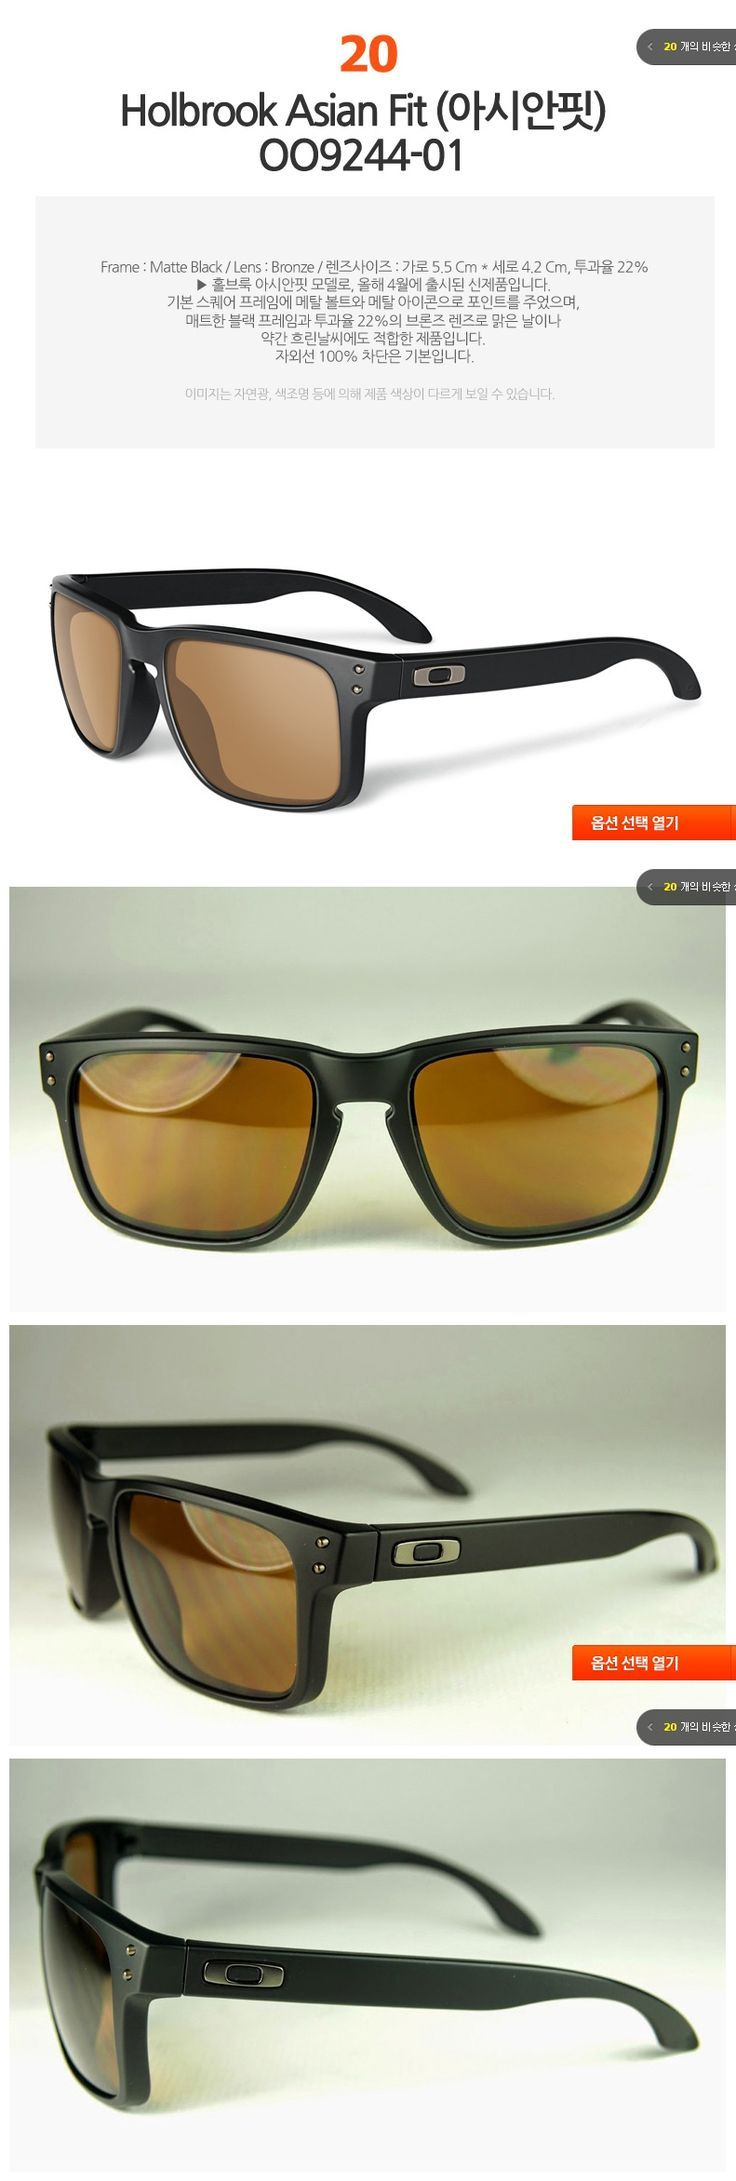 Ray ban sunglasses new design - My Dream Ray Ban Collection Holy Cow I M Gonna Love It Sunglasses